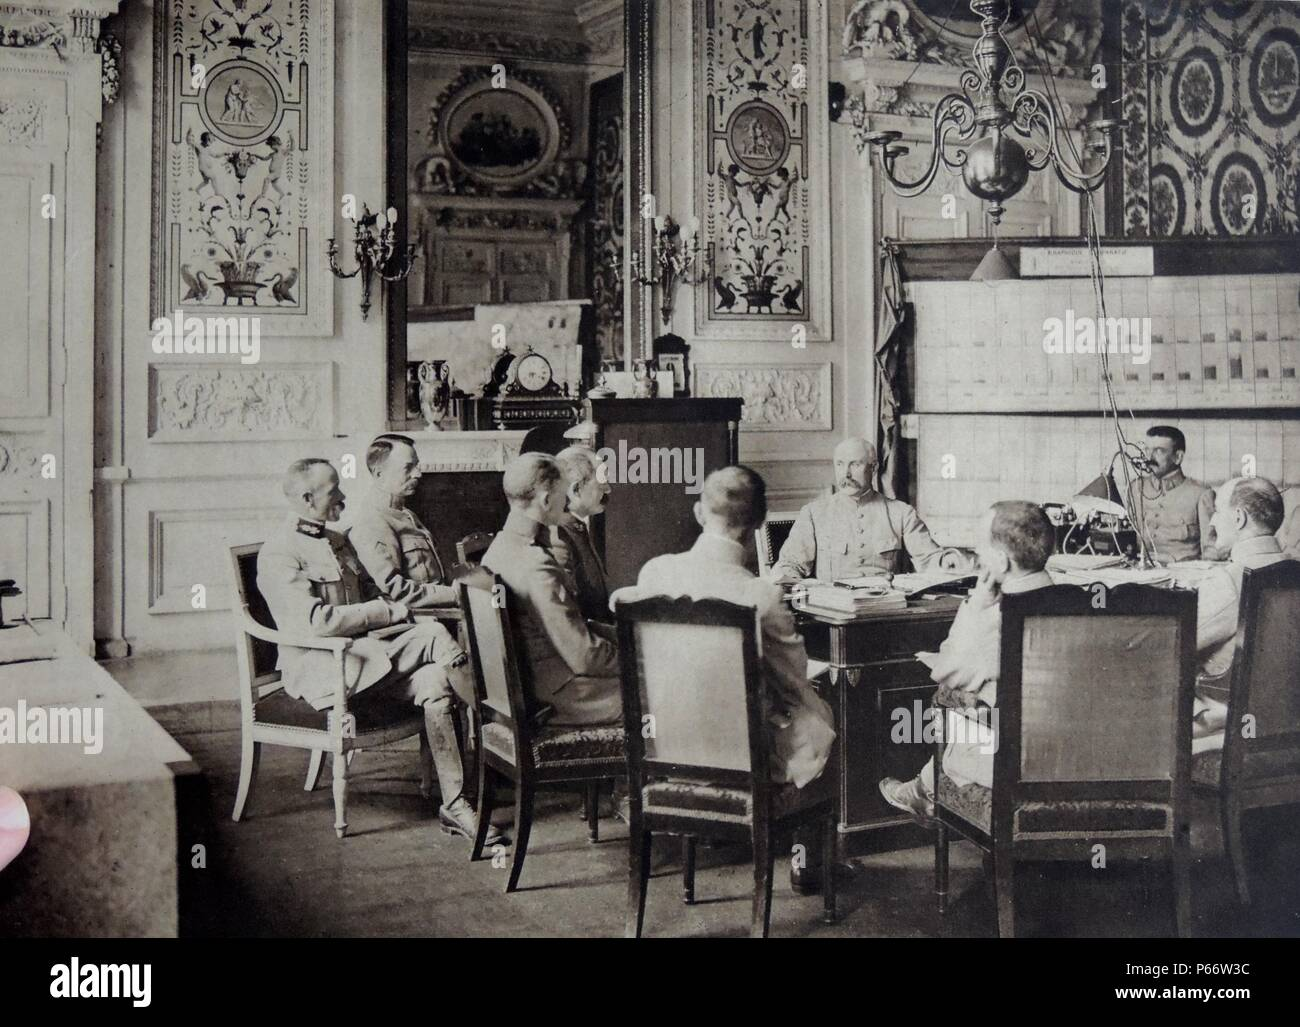 Meeting of senior officers on the staff of French General Philippe Petain during world war one, 1917. Petain is shown facing the camera (second from the right). 1917 - Stock Image